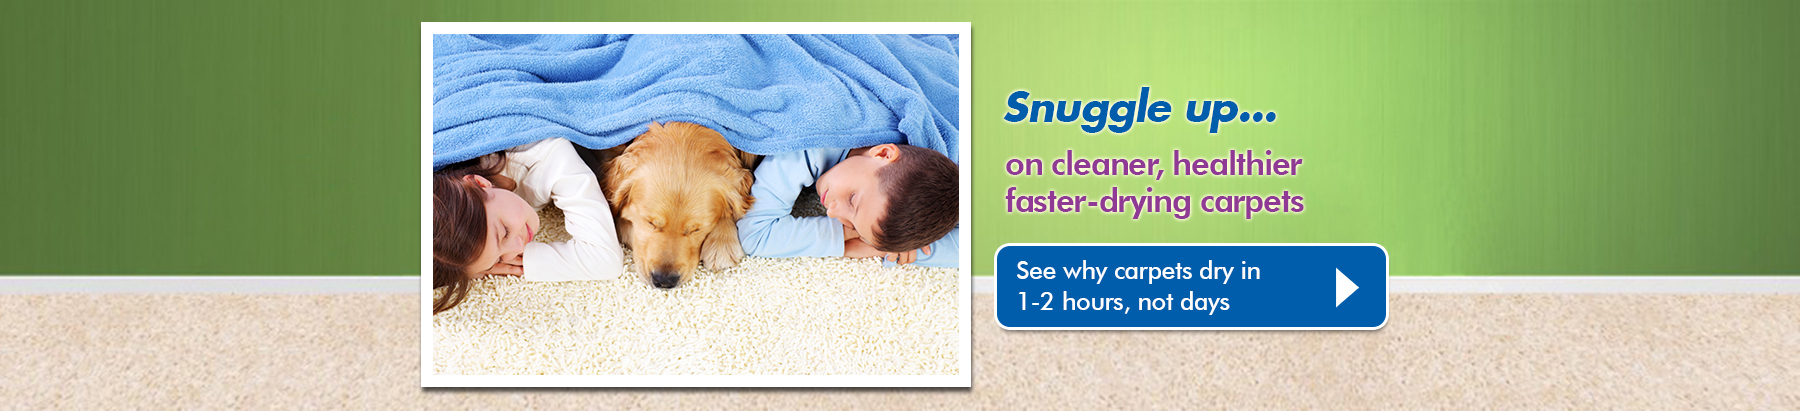 Chemdry Carpet Care | Best Carpet Cleaner | Geelong | Clean Carpets